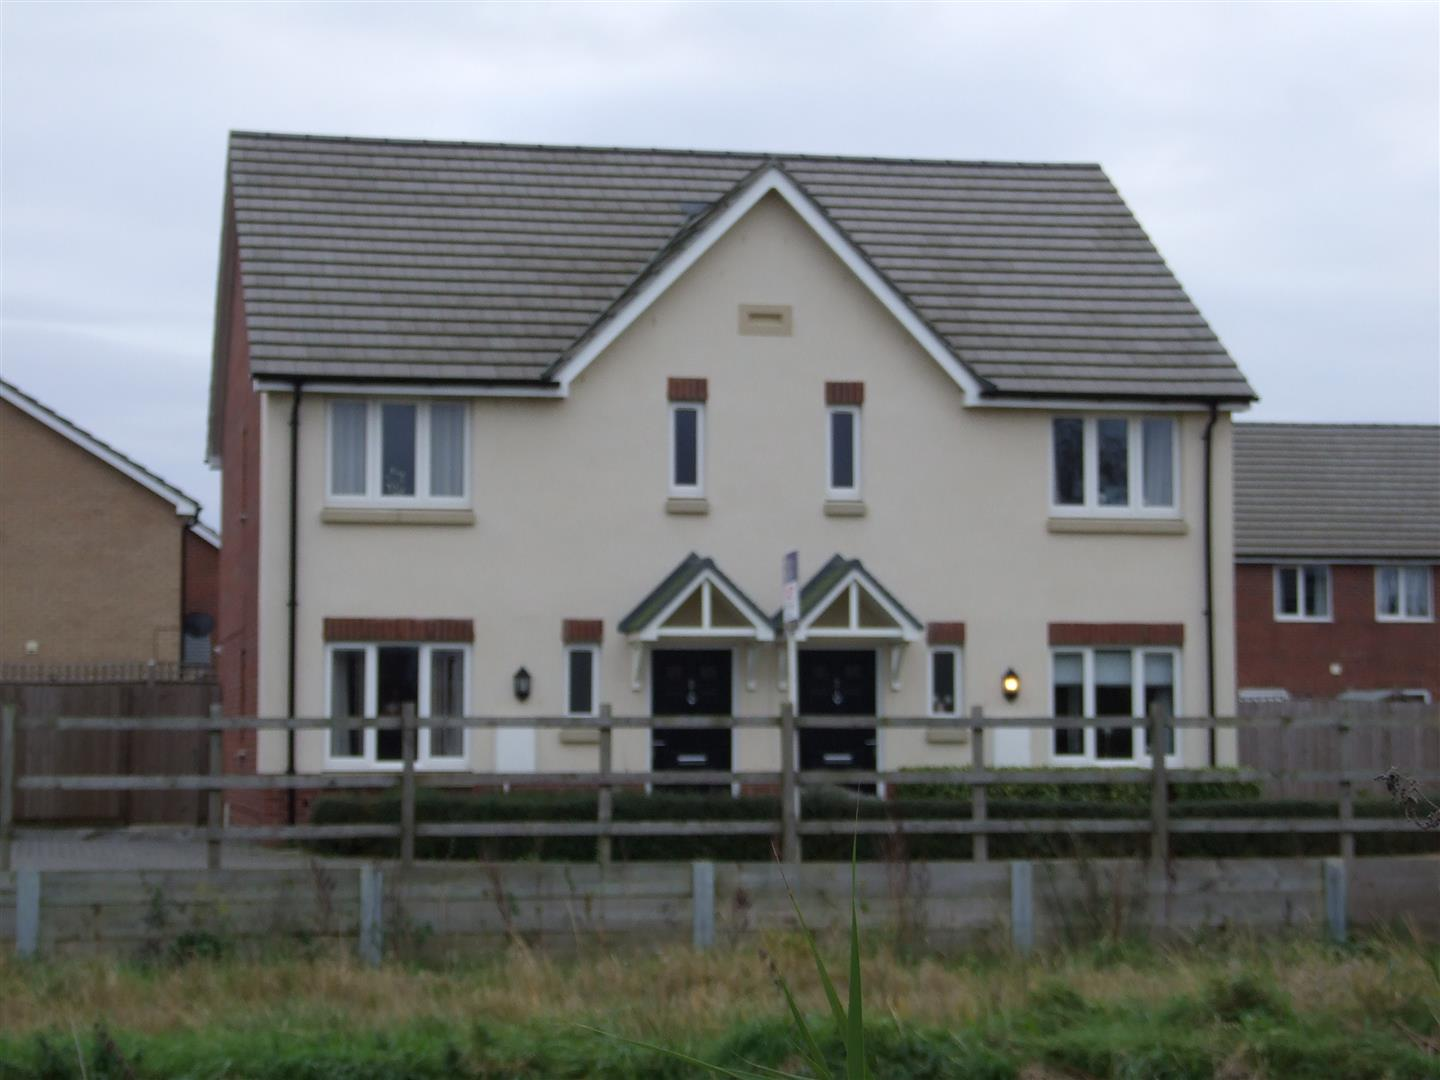 3 bed house to rent in Long Sutton, PE12 9GZ - Property Image 1